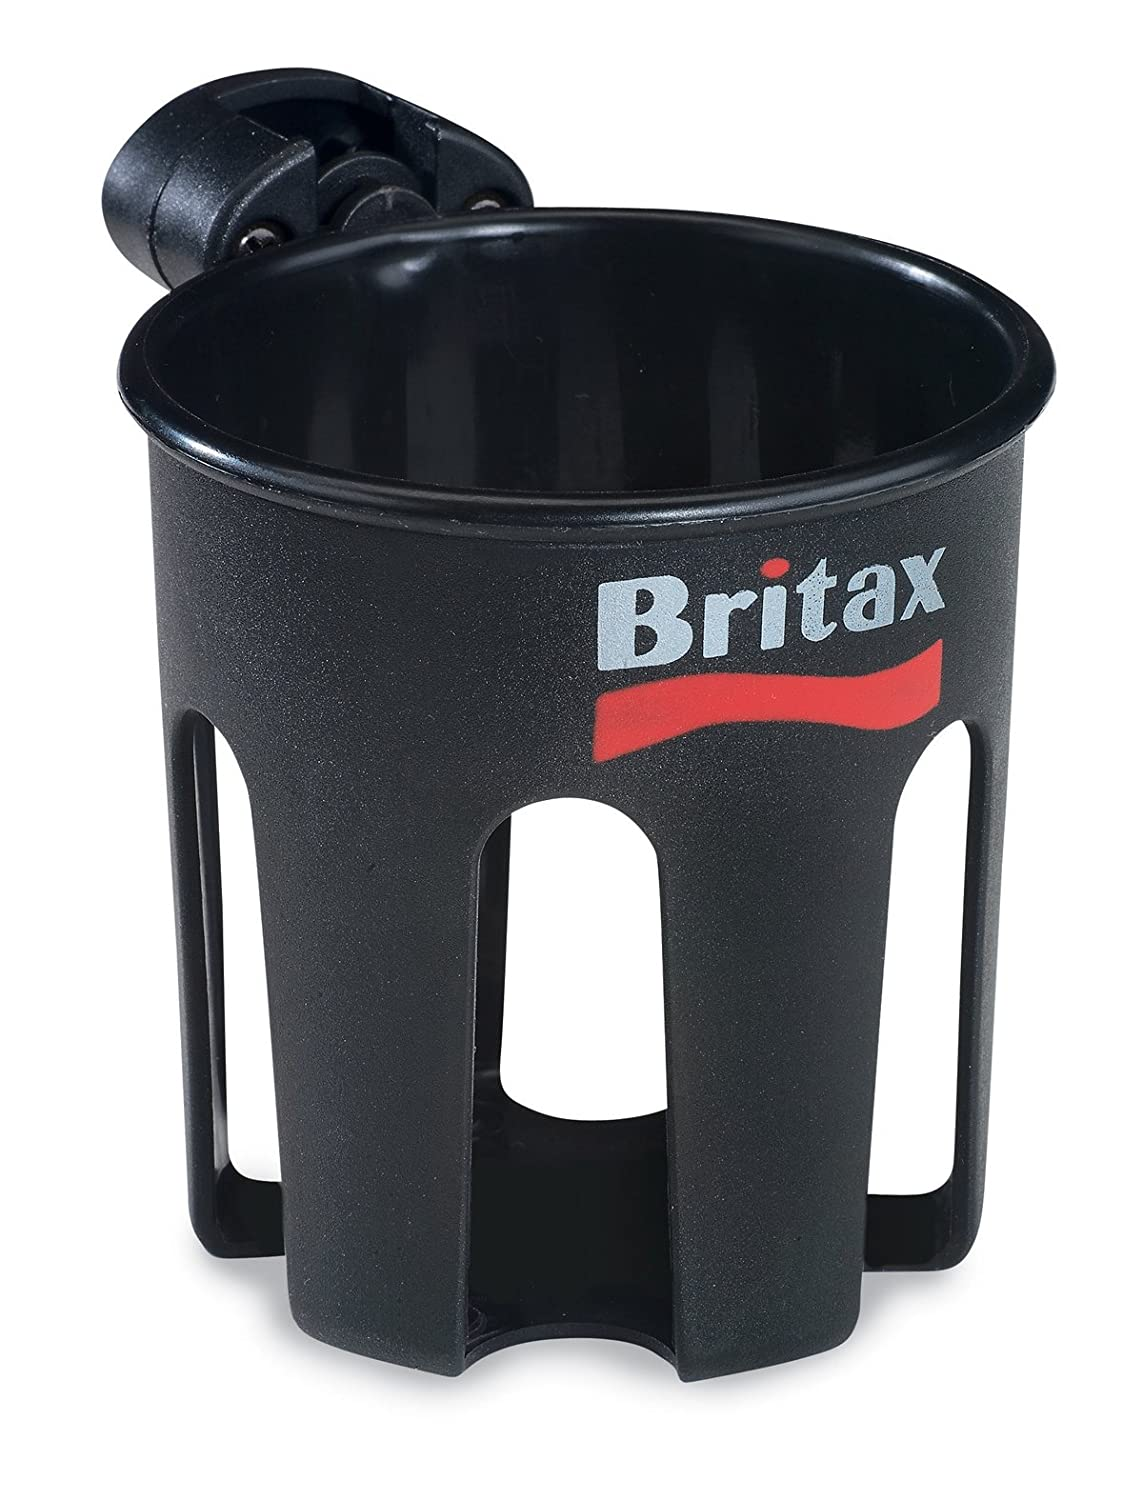 Adult Cup Holder for Britax Single and Double B-Agile Strollers